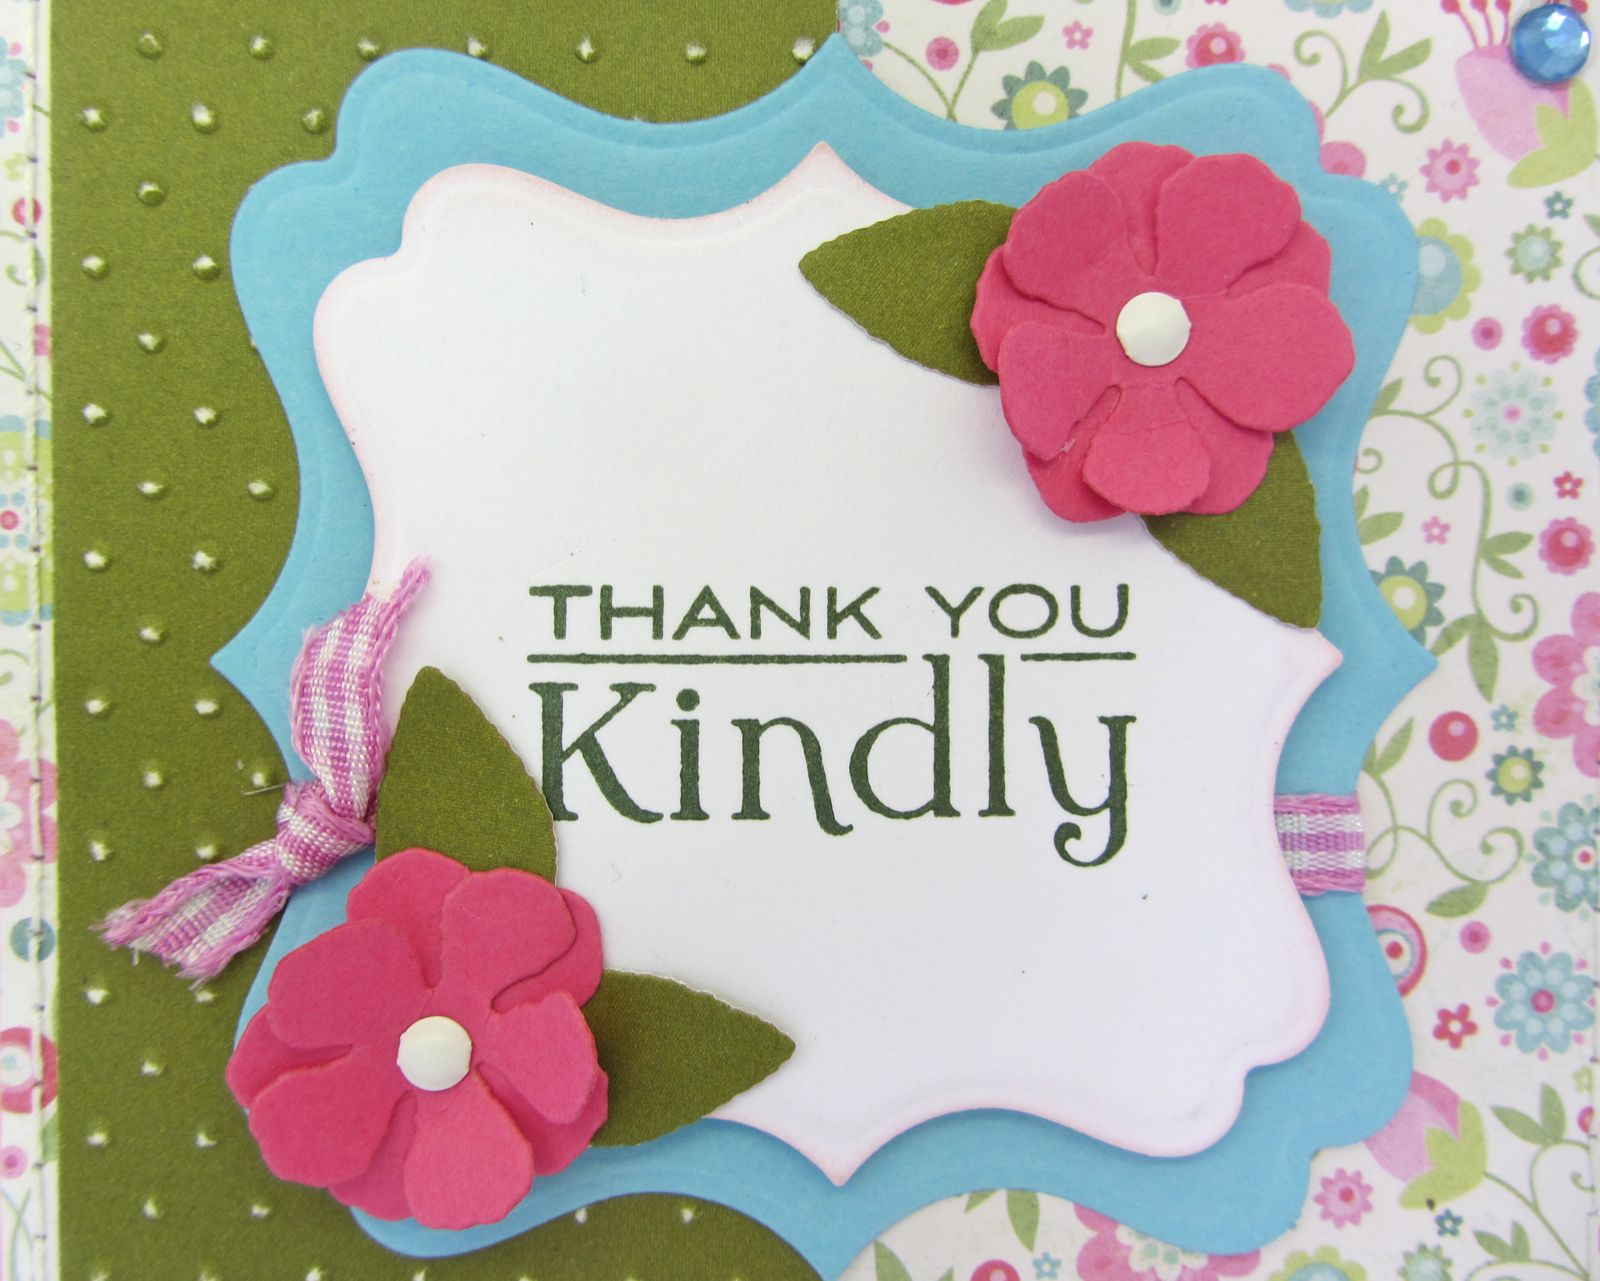 sunny summer crafts  thank you kindly